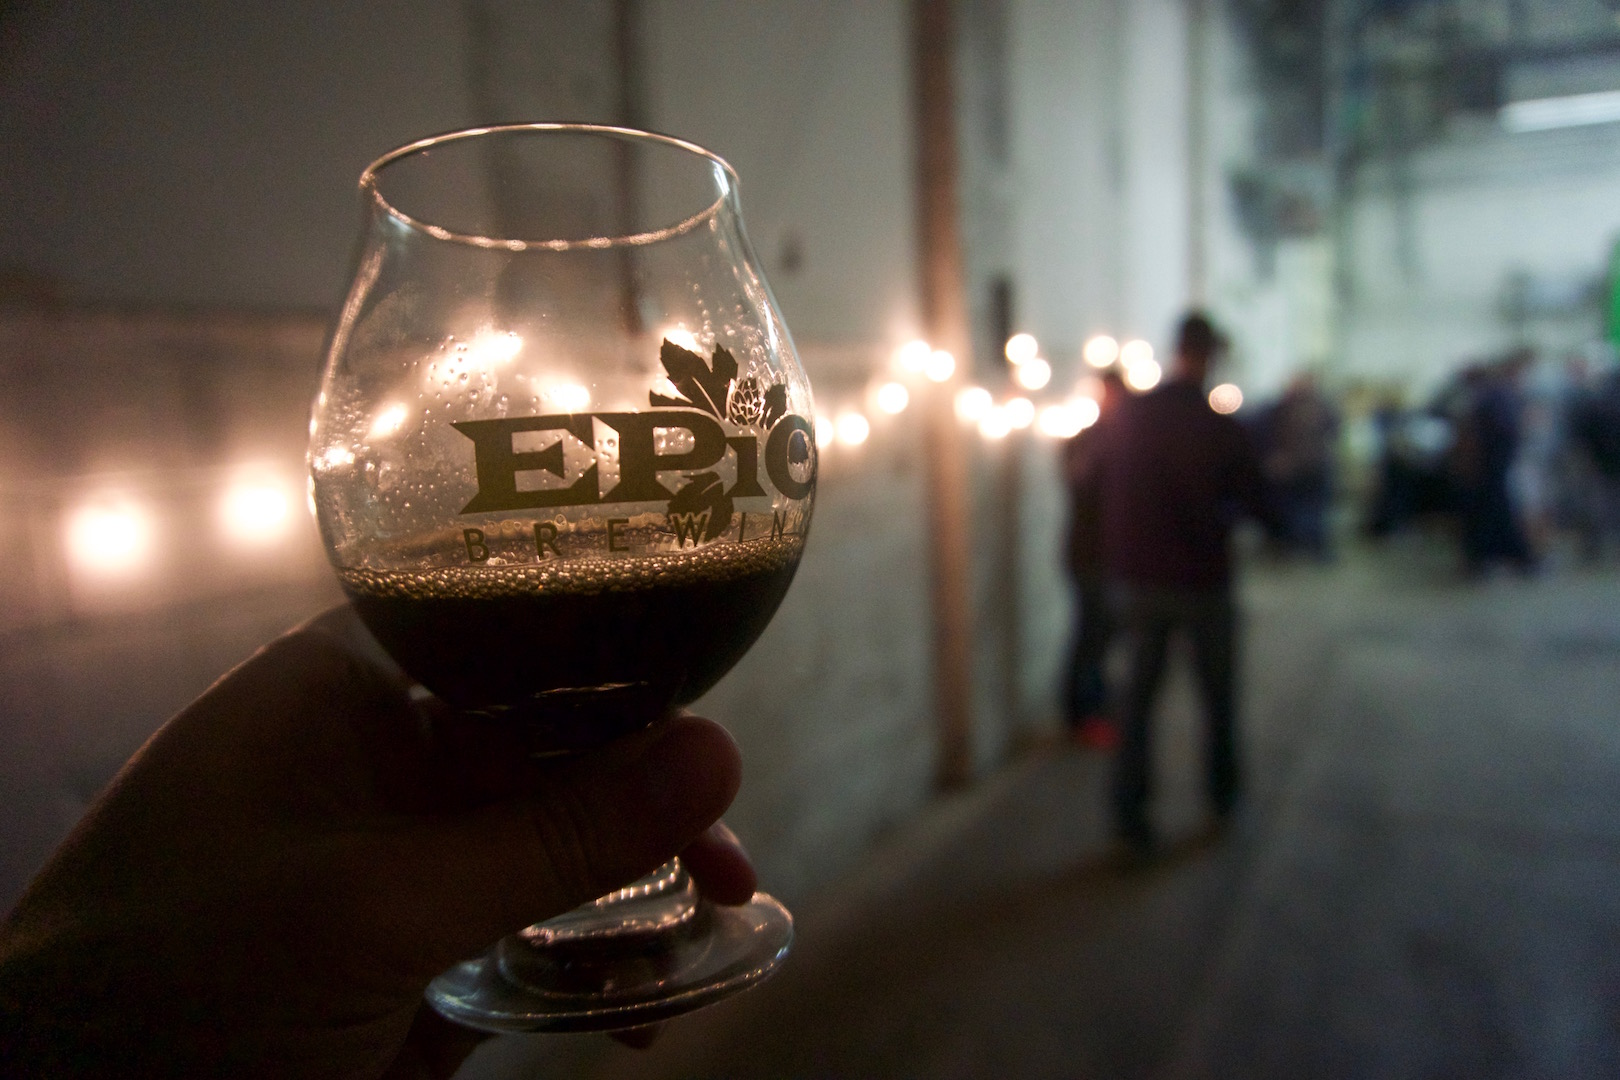 Cheers to a fantastic event, Epic Brewing.